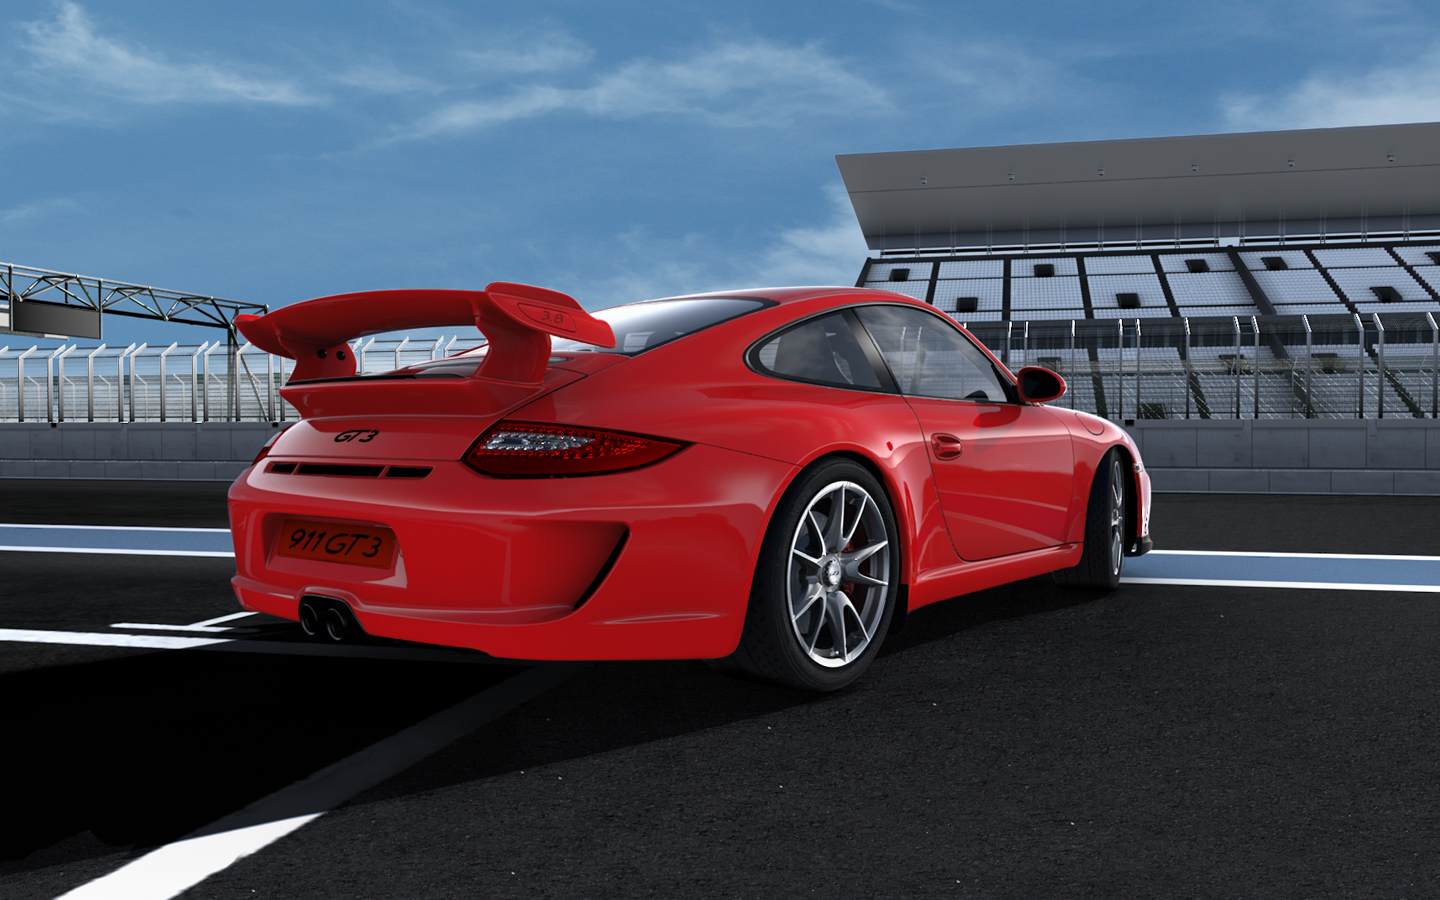 2008 Porsche 911 GT3 picture  HD Wallpaper